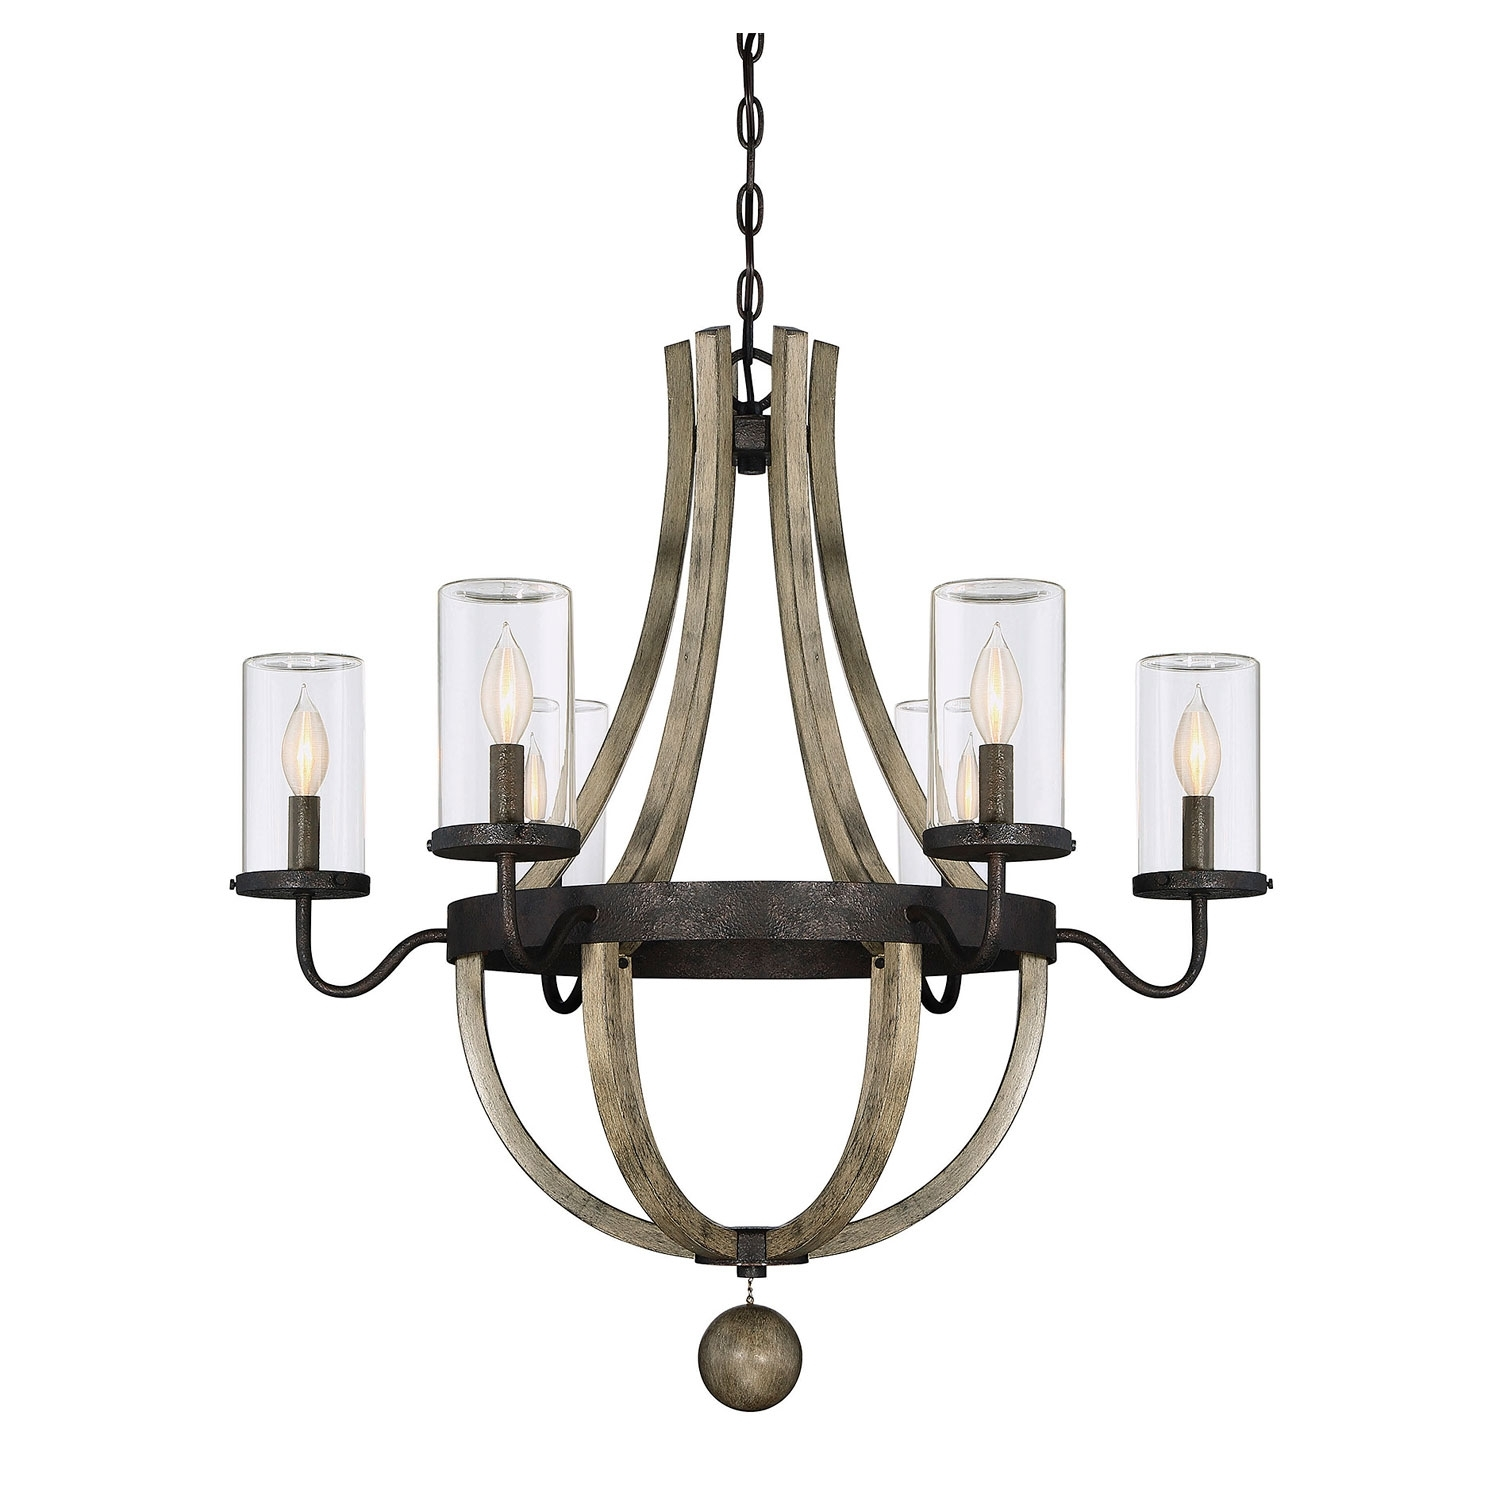 Outdoor Hanging Lights On Sale | Bellacor Within Outdoor Hanging Lighting Fixtures (View 14 of 15)